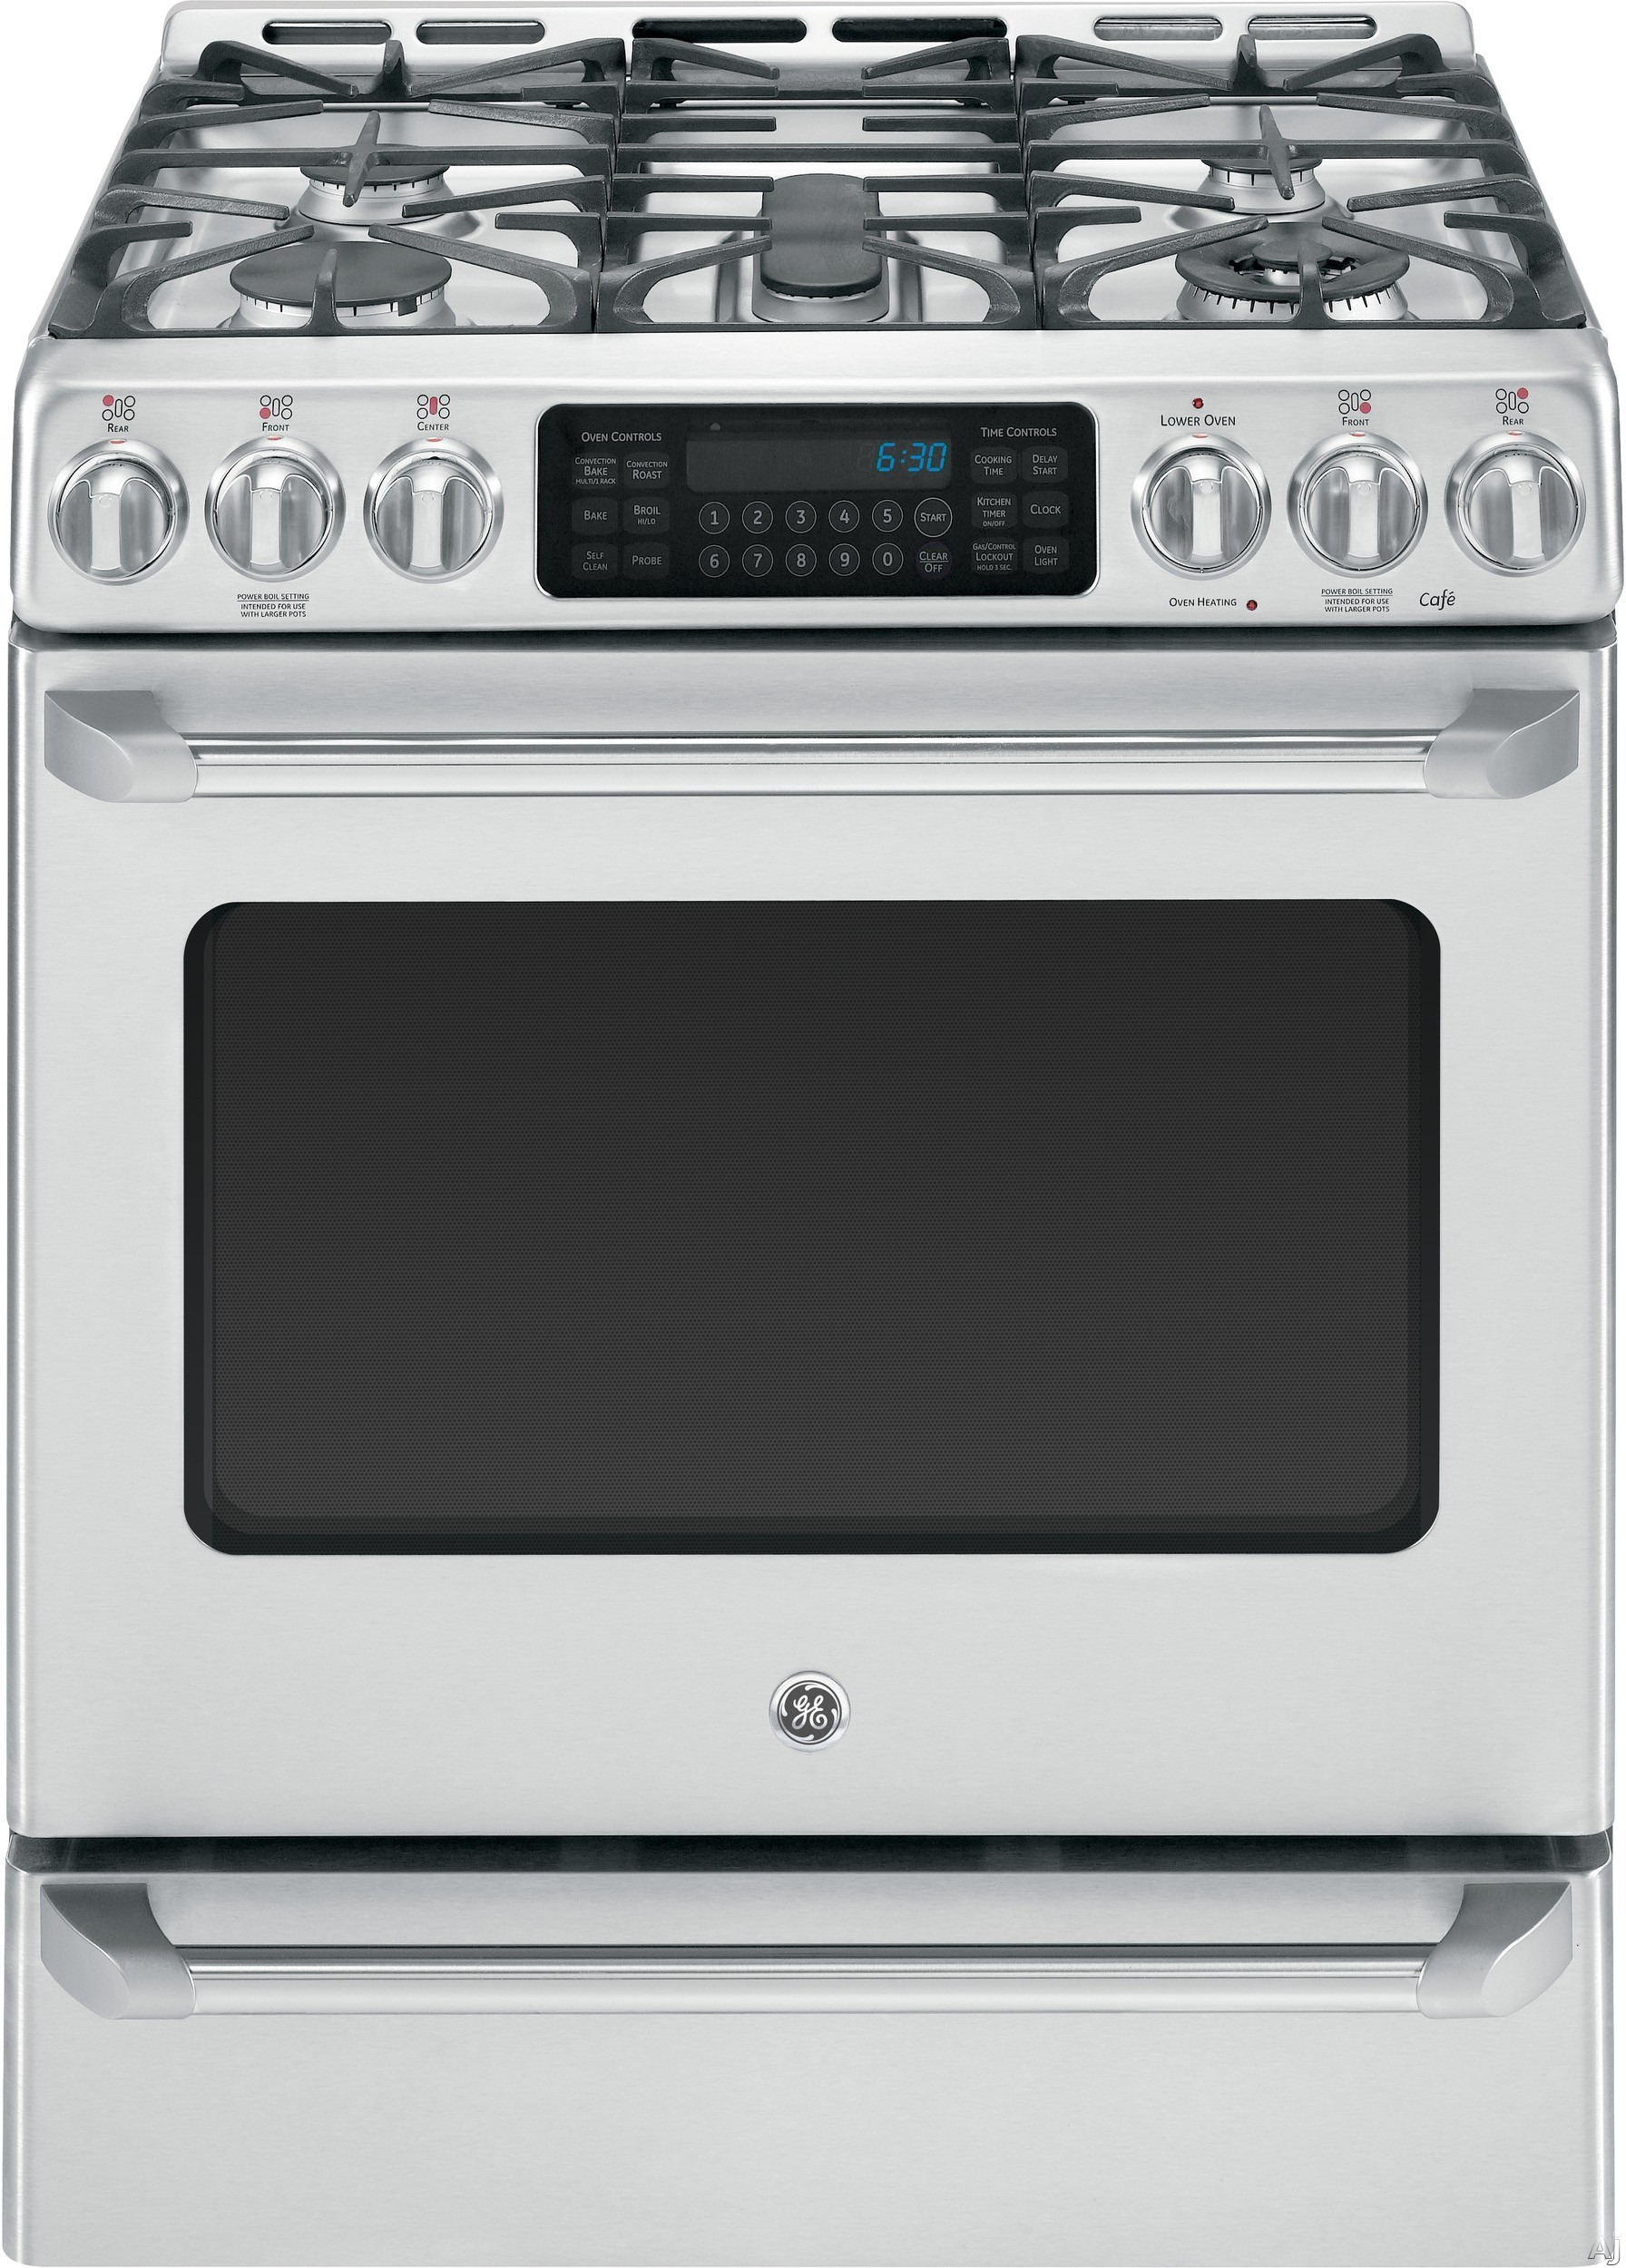 GE Cafe Series CGS985SETSS 30 Inch Slide-in Gas Range with 5 Sealed Burners, 5.4 cu. ft. Convection Oven, 20,000 BTU Tri-Ring Burner, Non-Stick Griddle, Temperature Probe, Baking Drawer and Self-Clean Mode